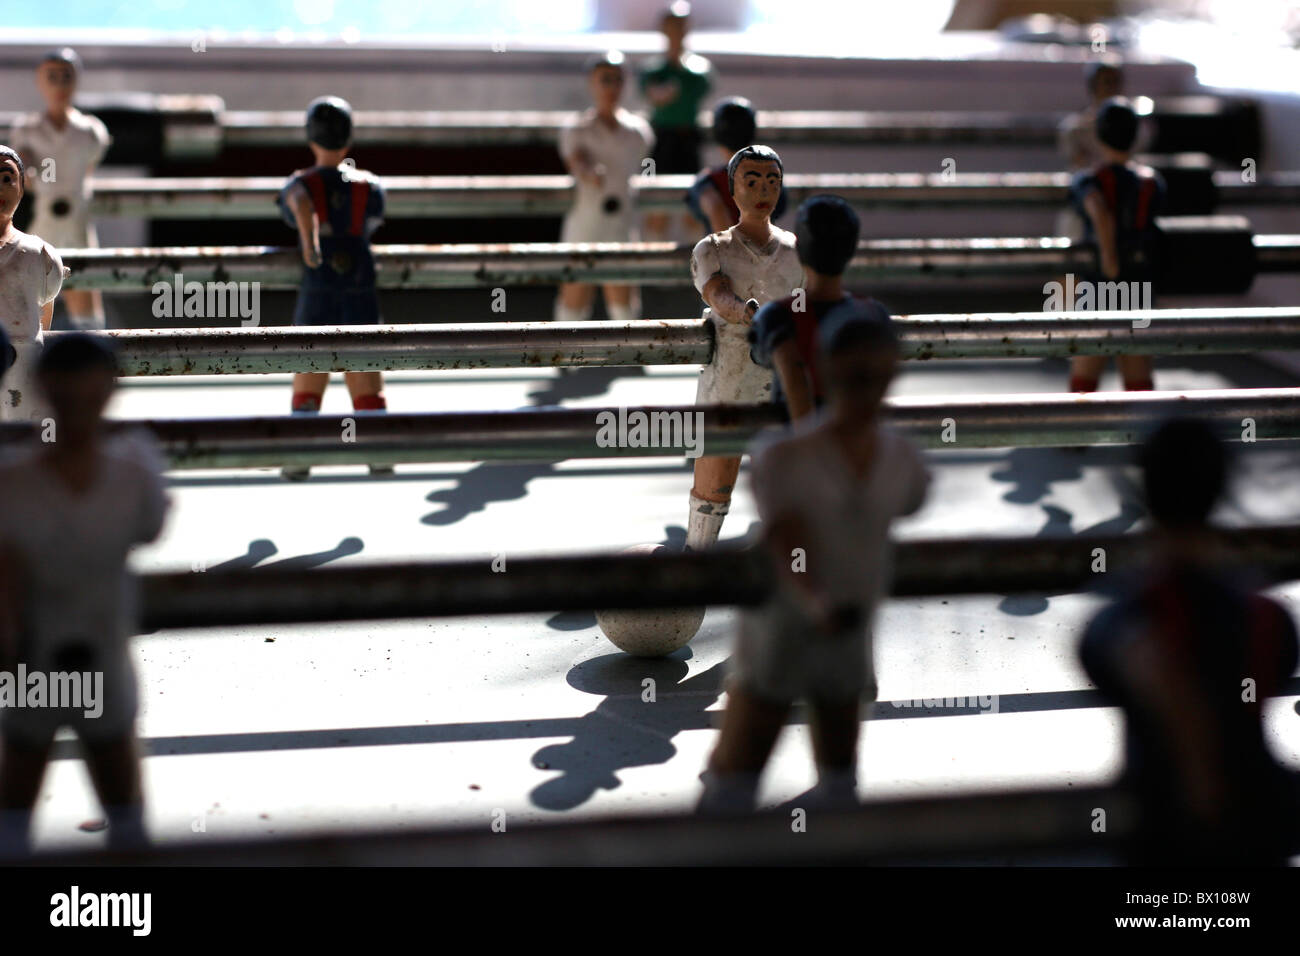 Old table football game played outside - Stock Image